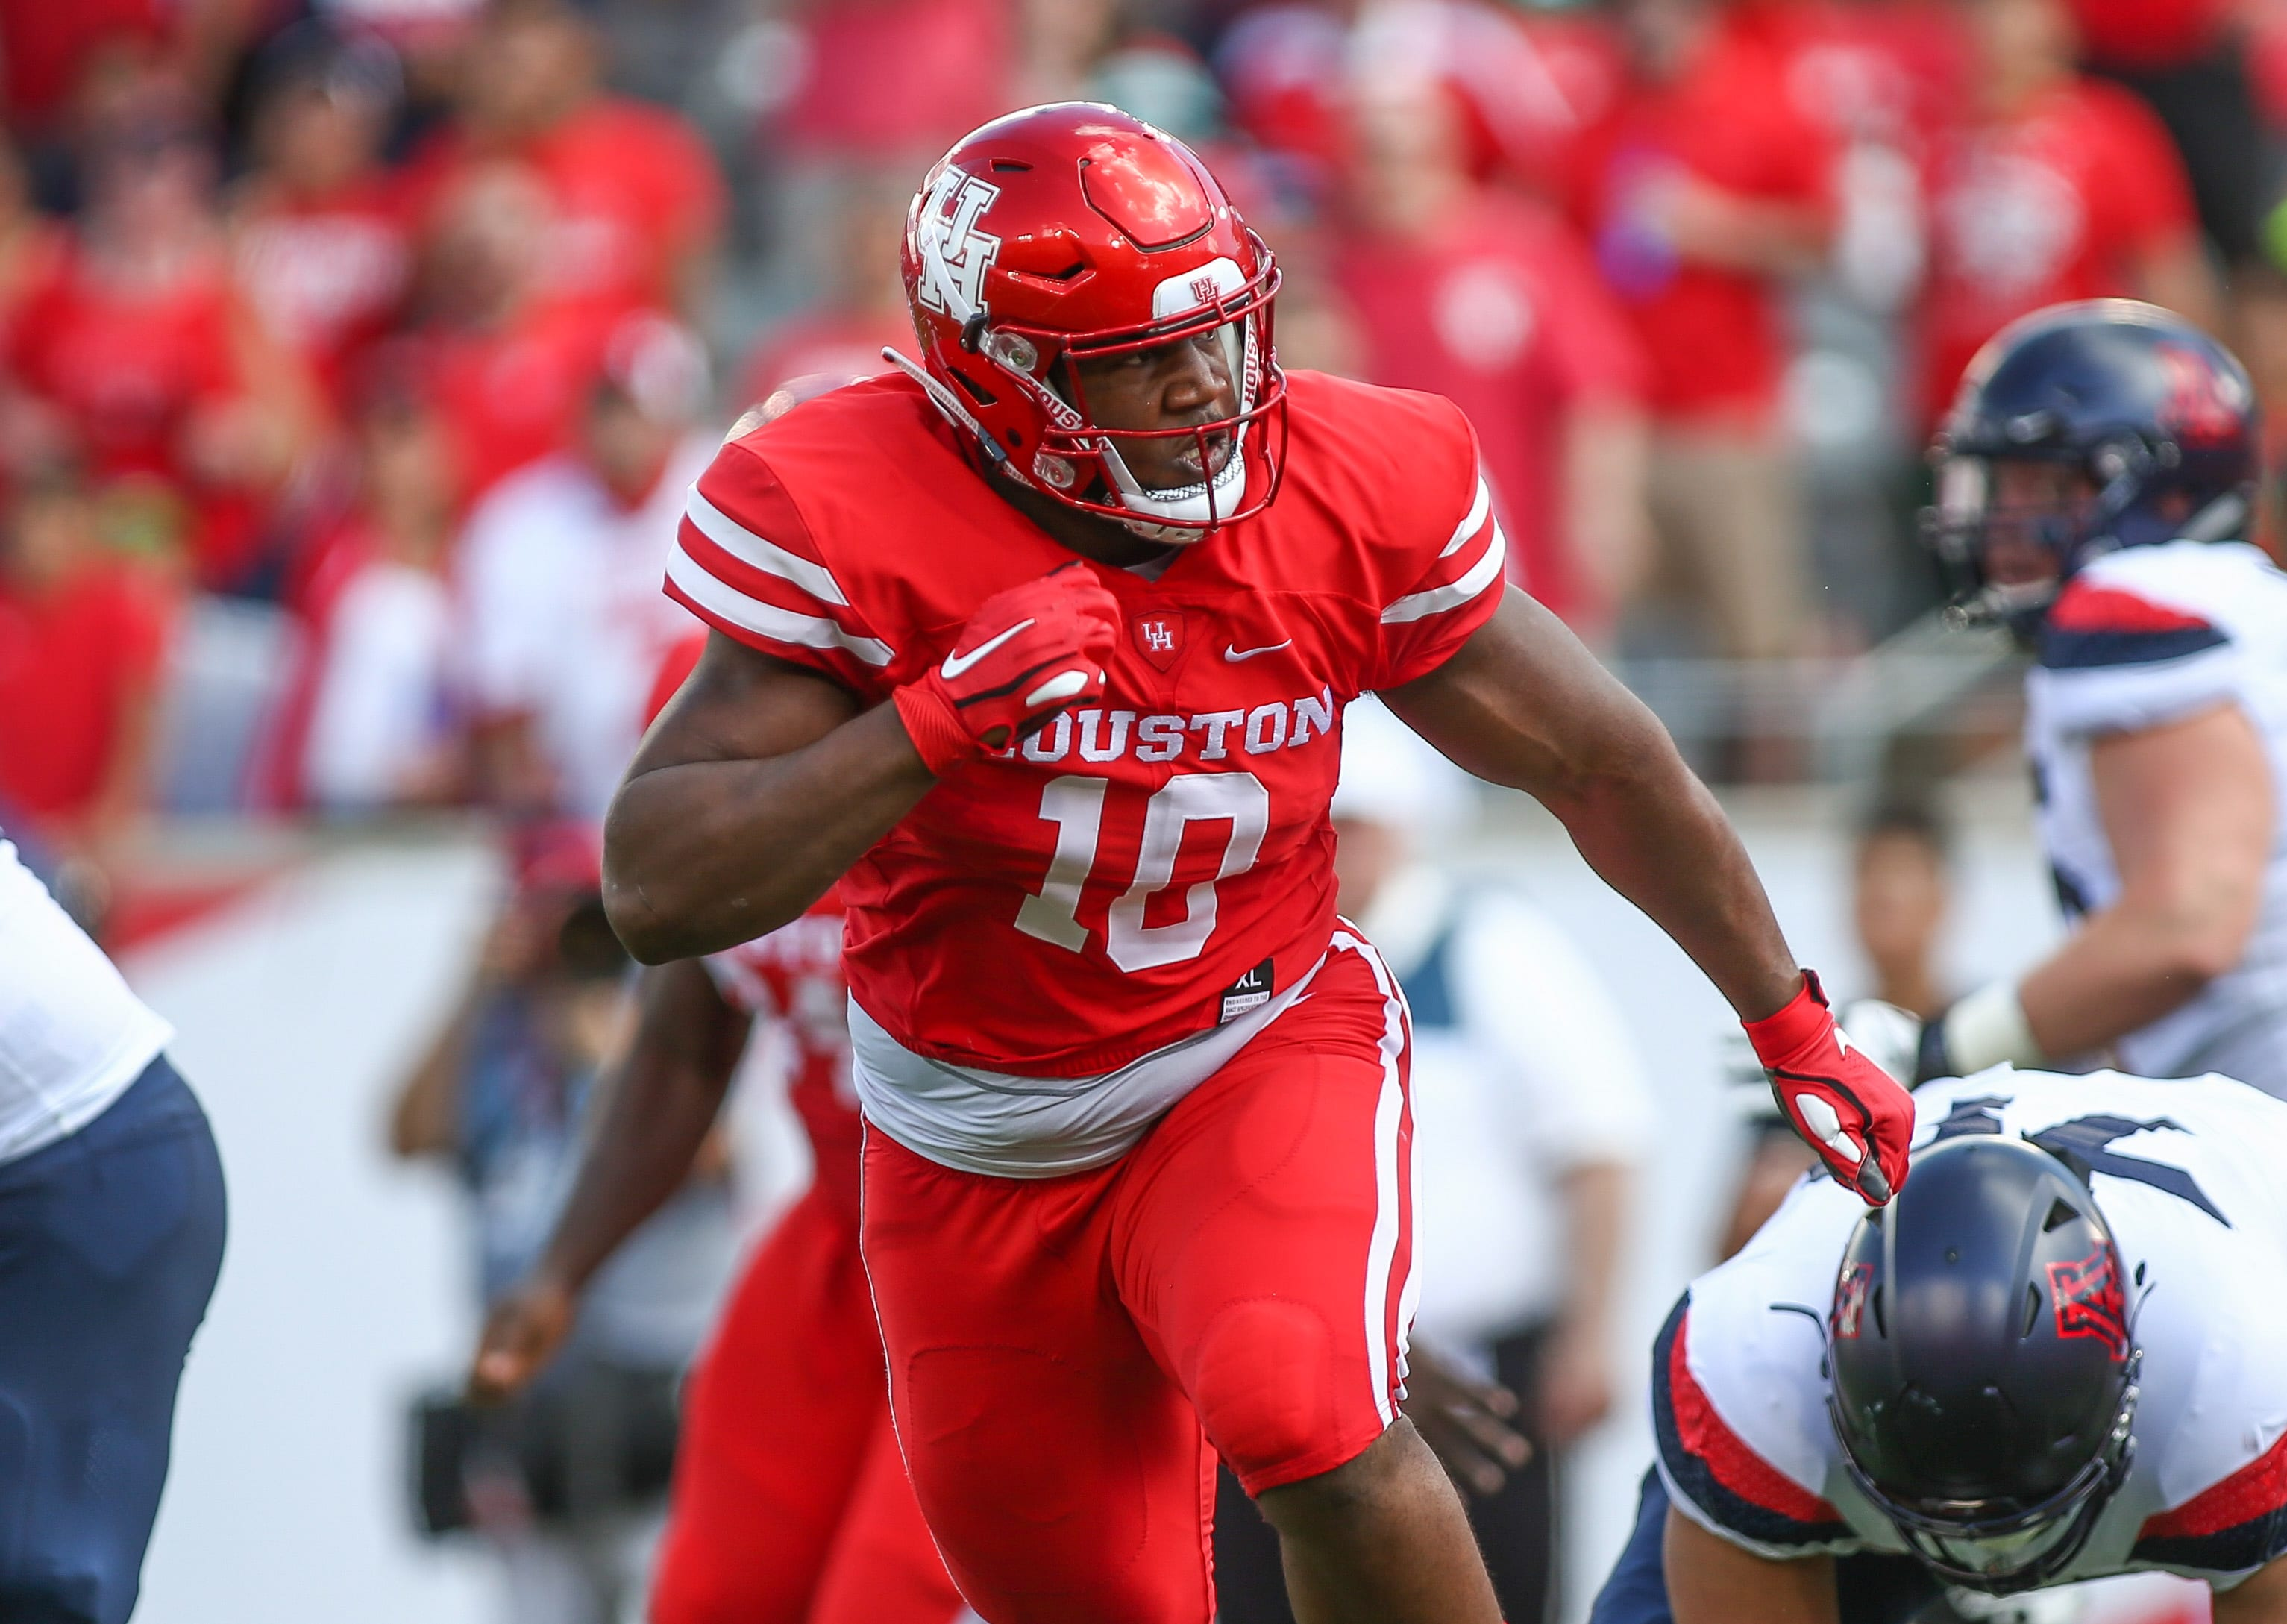 The New York Giants could go after Ed Oliver in the 2019 NFL draft.